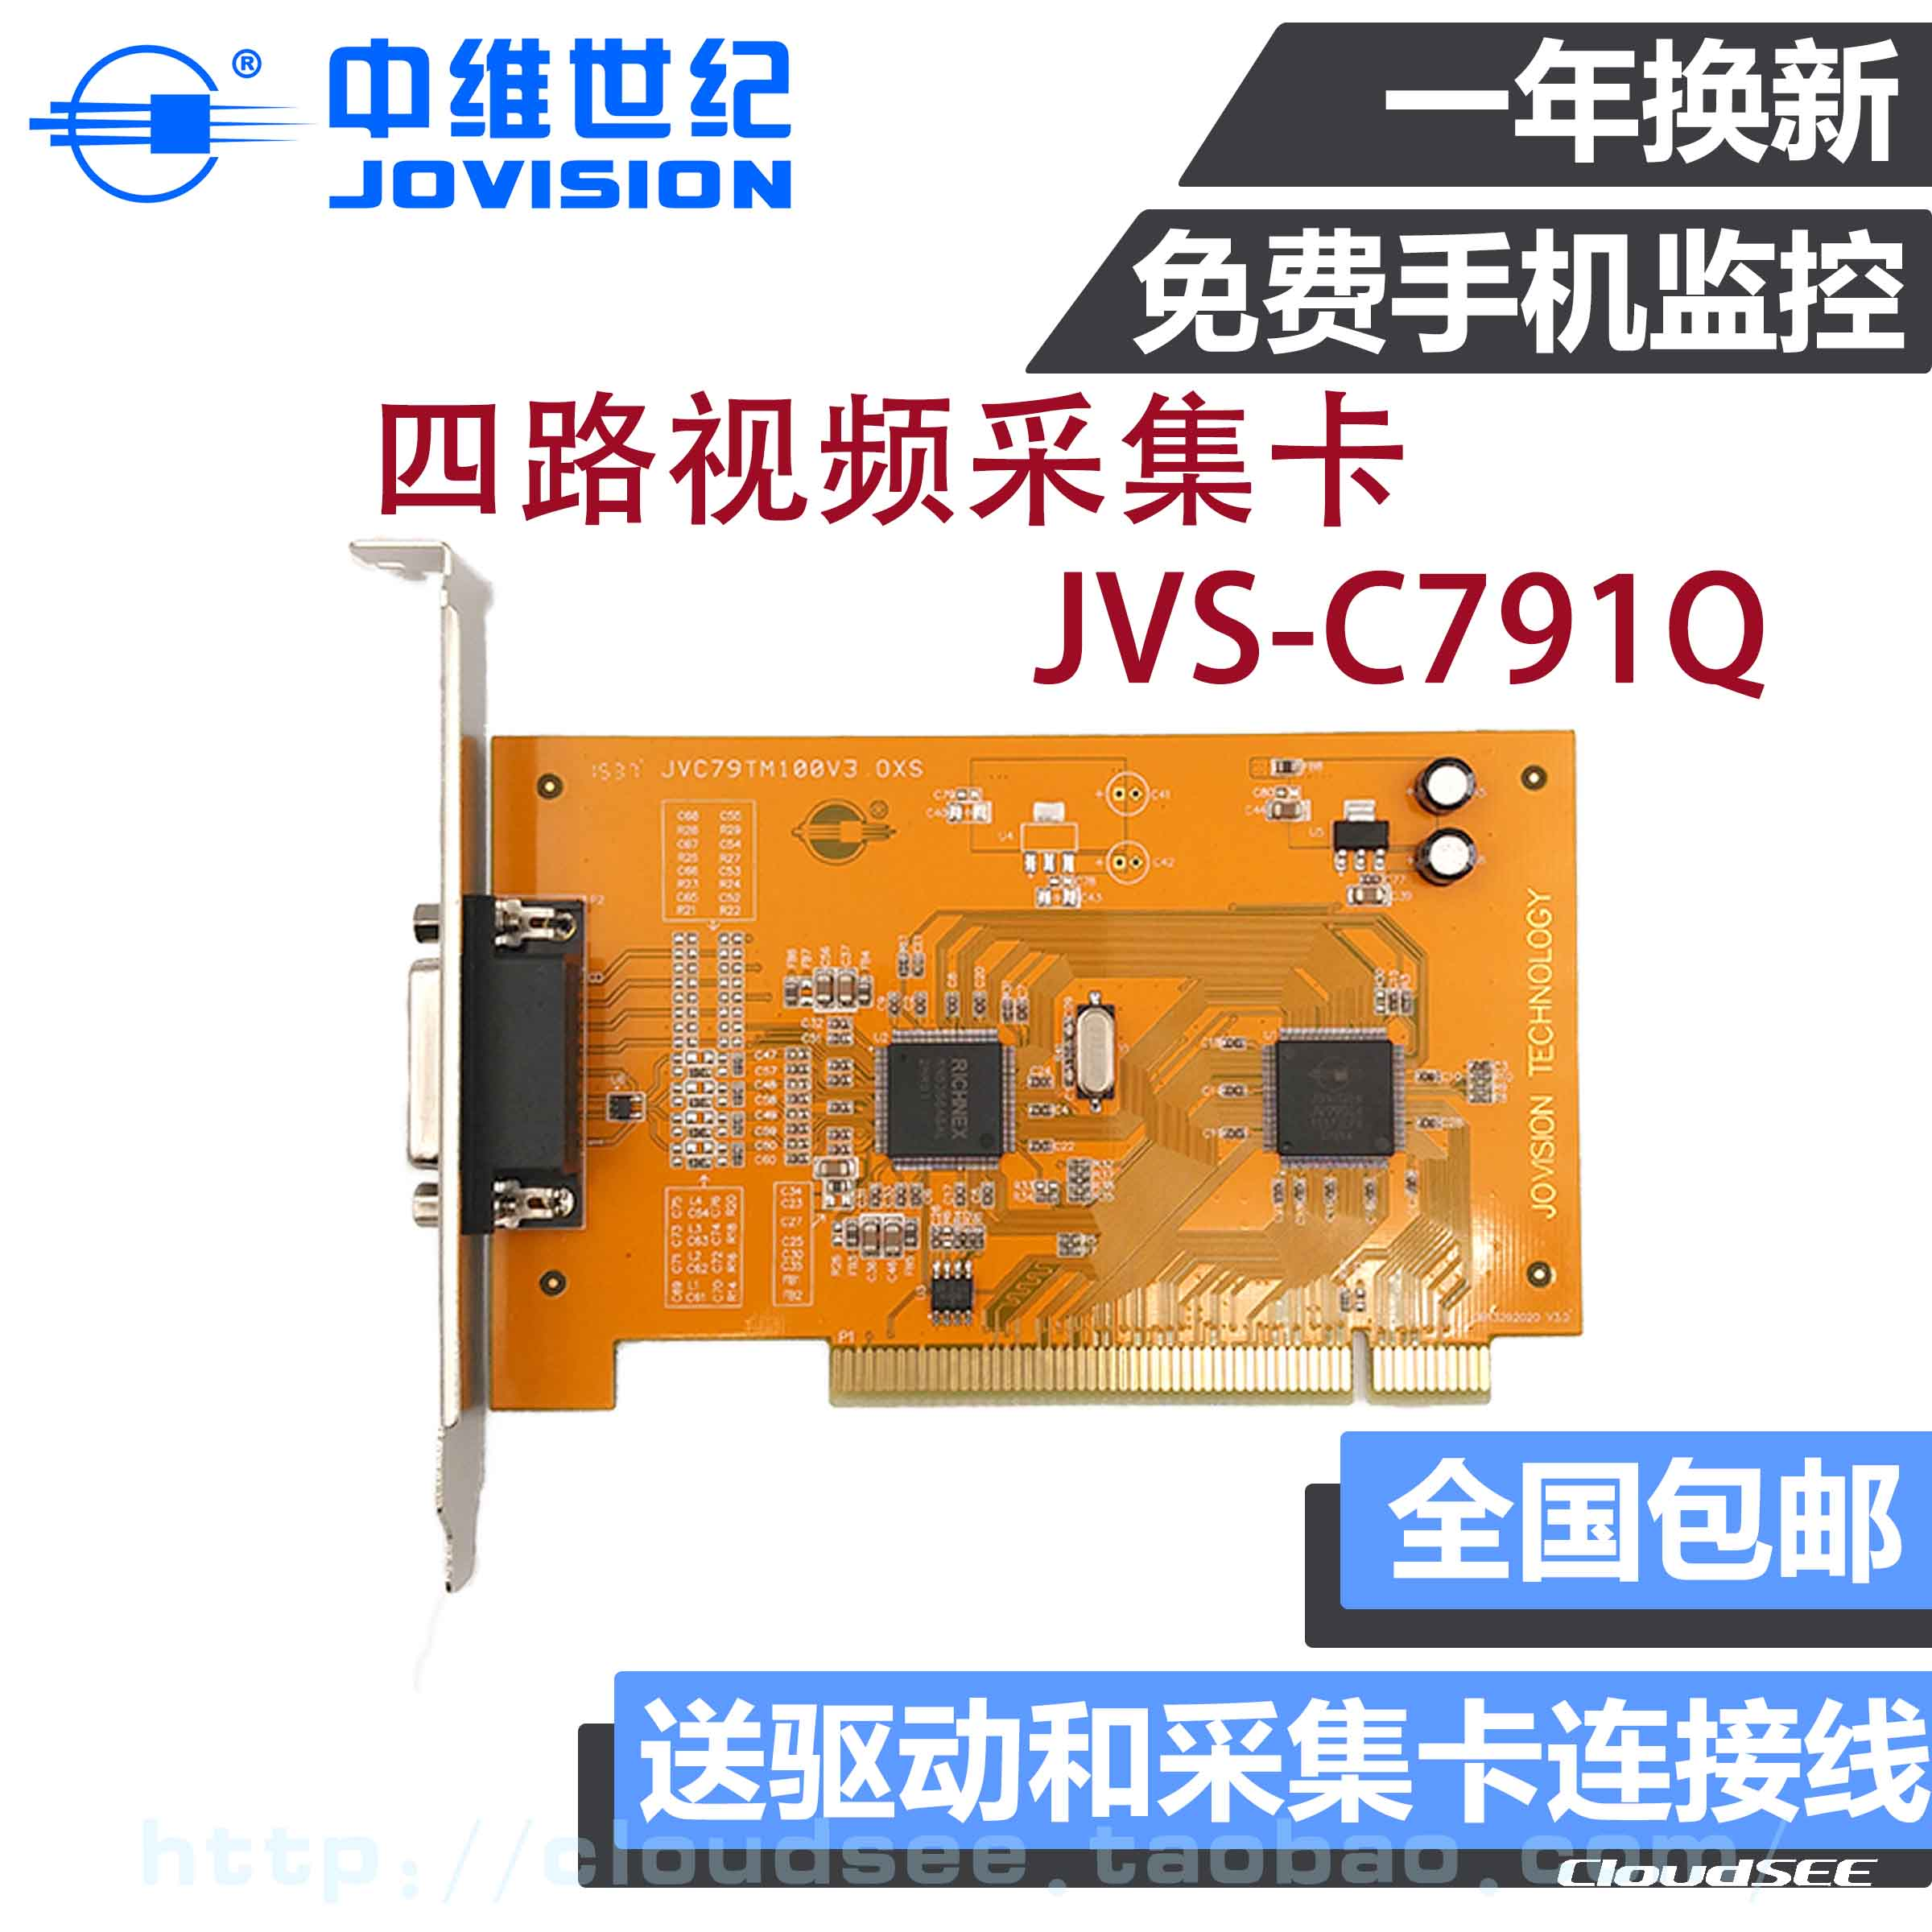 Zhongwei Century JVS-C791Q 4-channel video capture card PCI mobile phone remote monitoring card